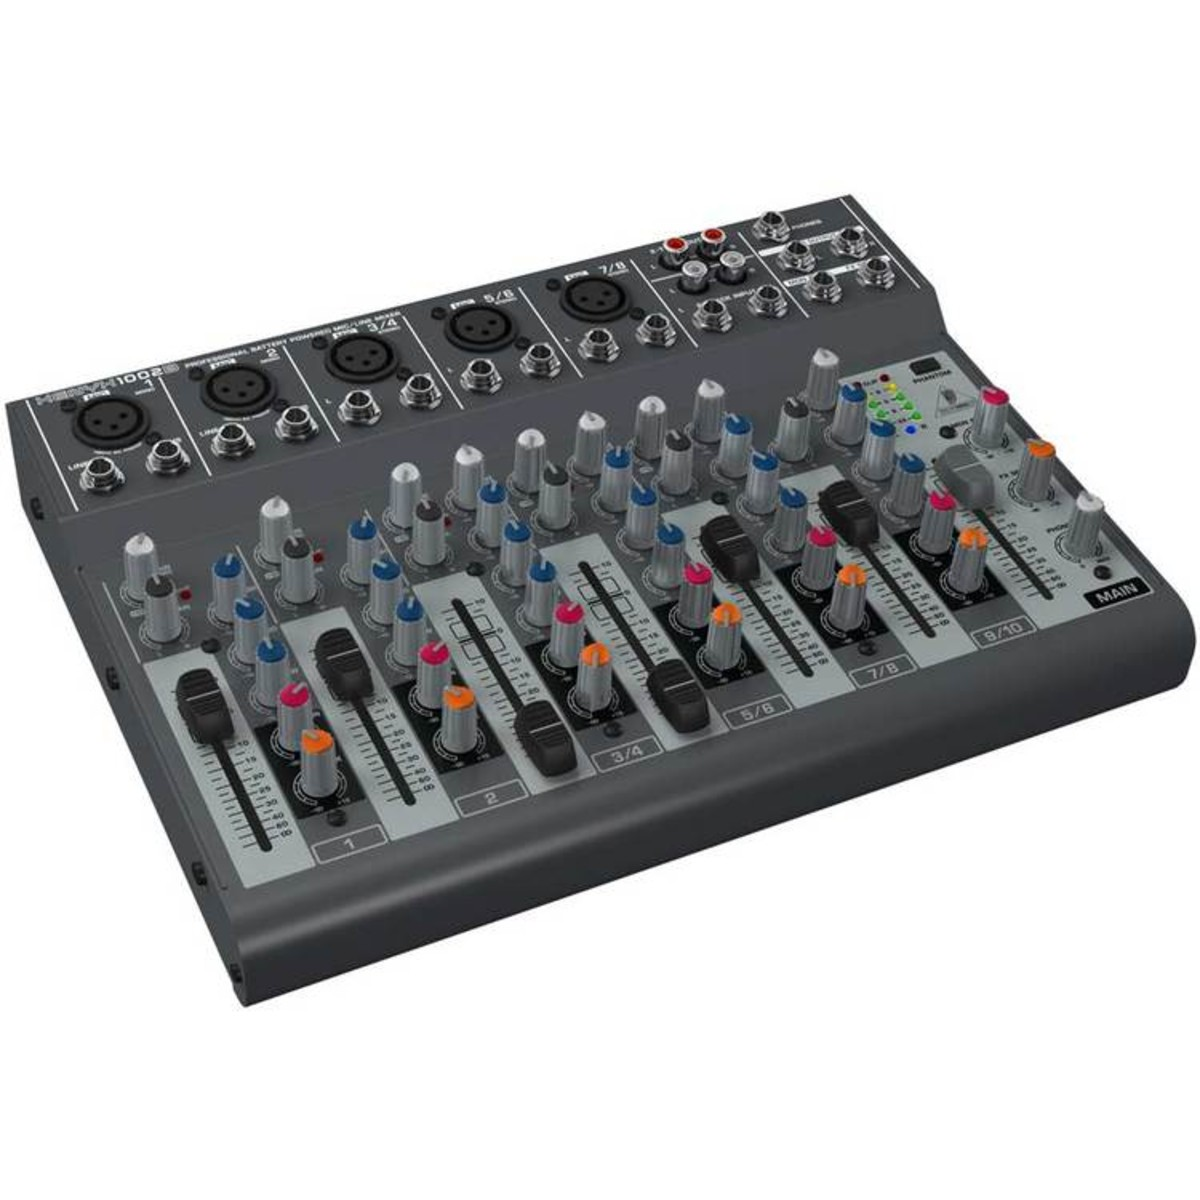 Behringer xenyx 1002b table de mixage bo te ouverte gear4music - Table de mixage behringer ...